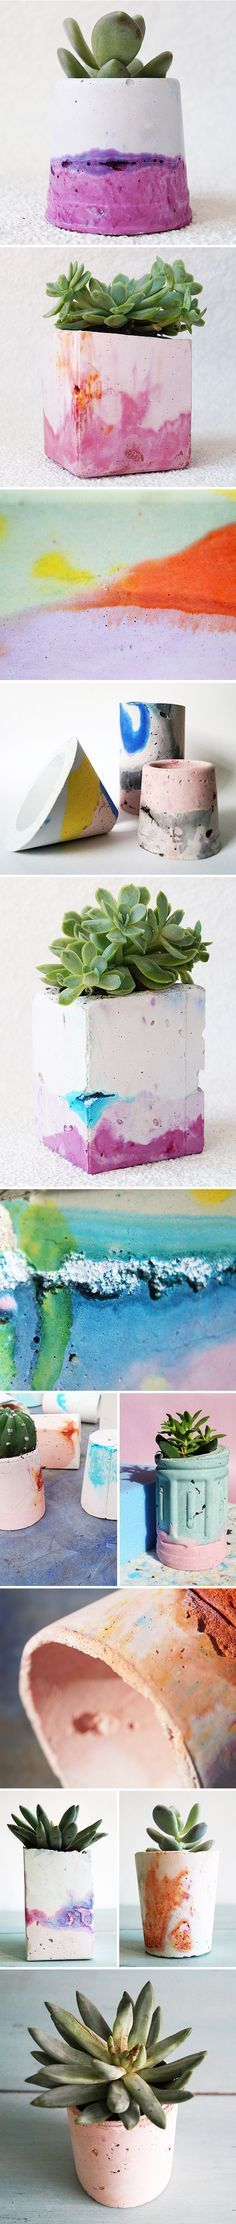 colorful concrete by emma mcdowall